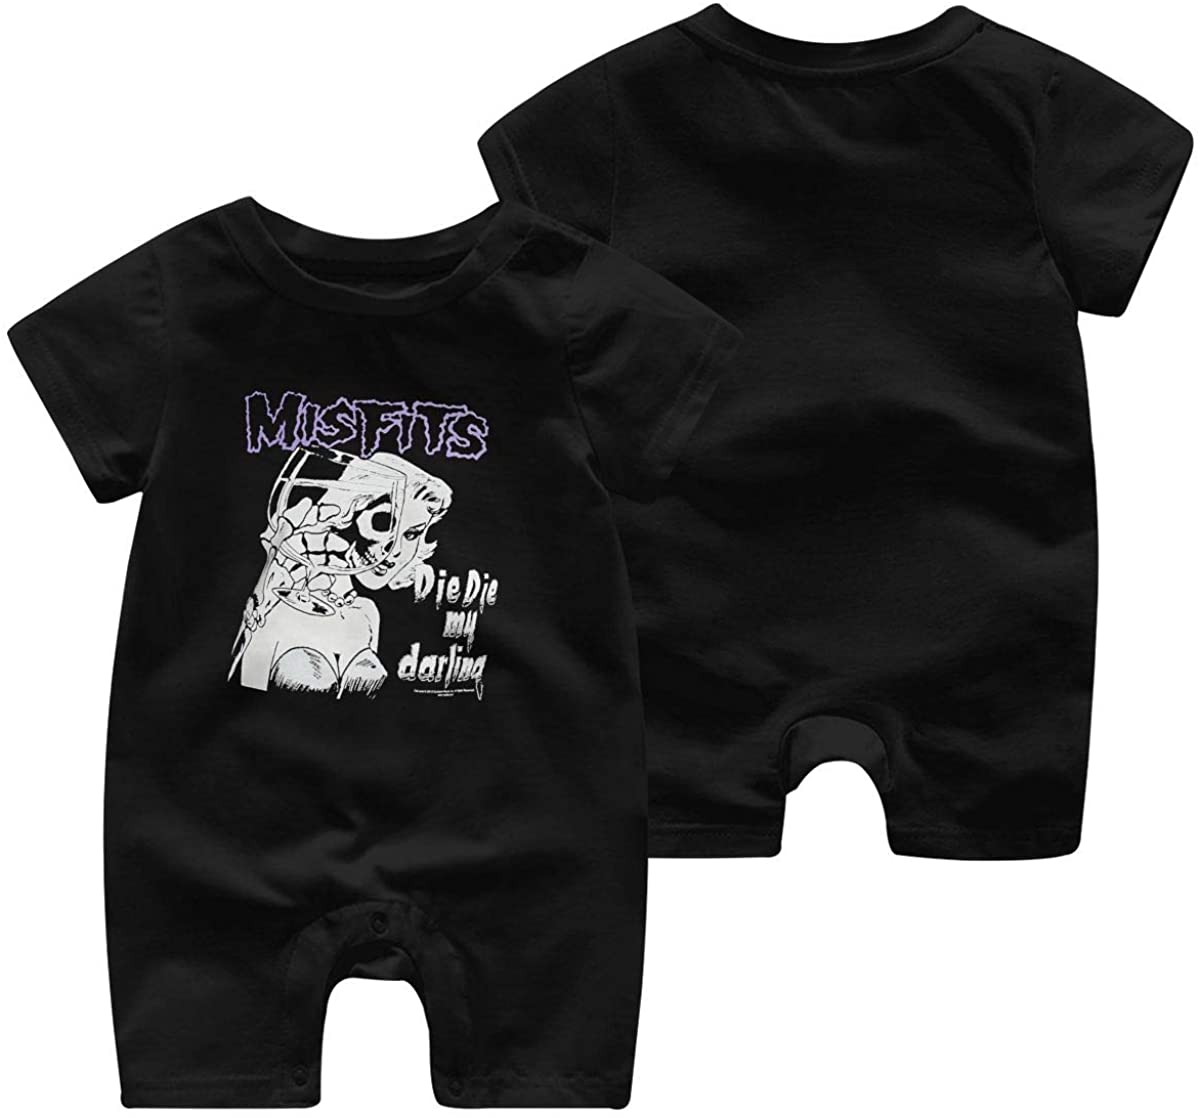 The Misfits Die My Darling Baby Jersey Boys Girls Jumpsuit Bodysuit